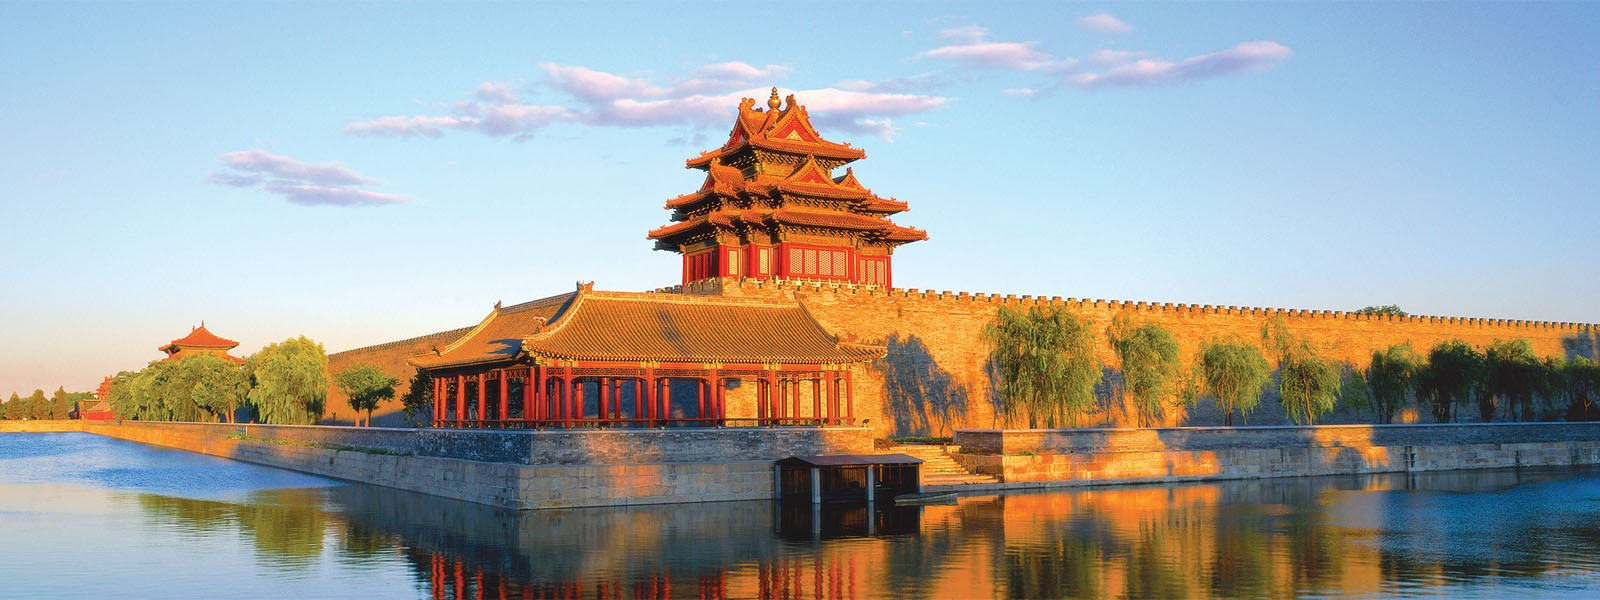 Beijing Day sightseeing